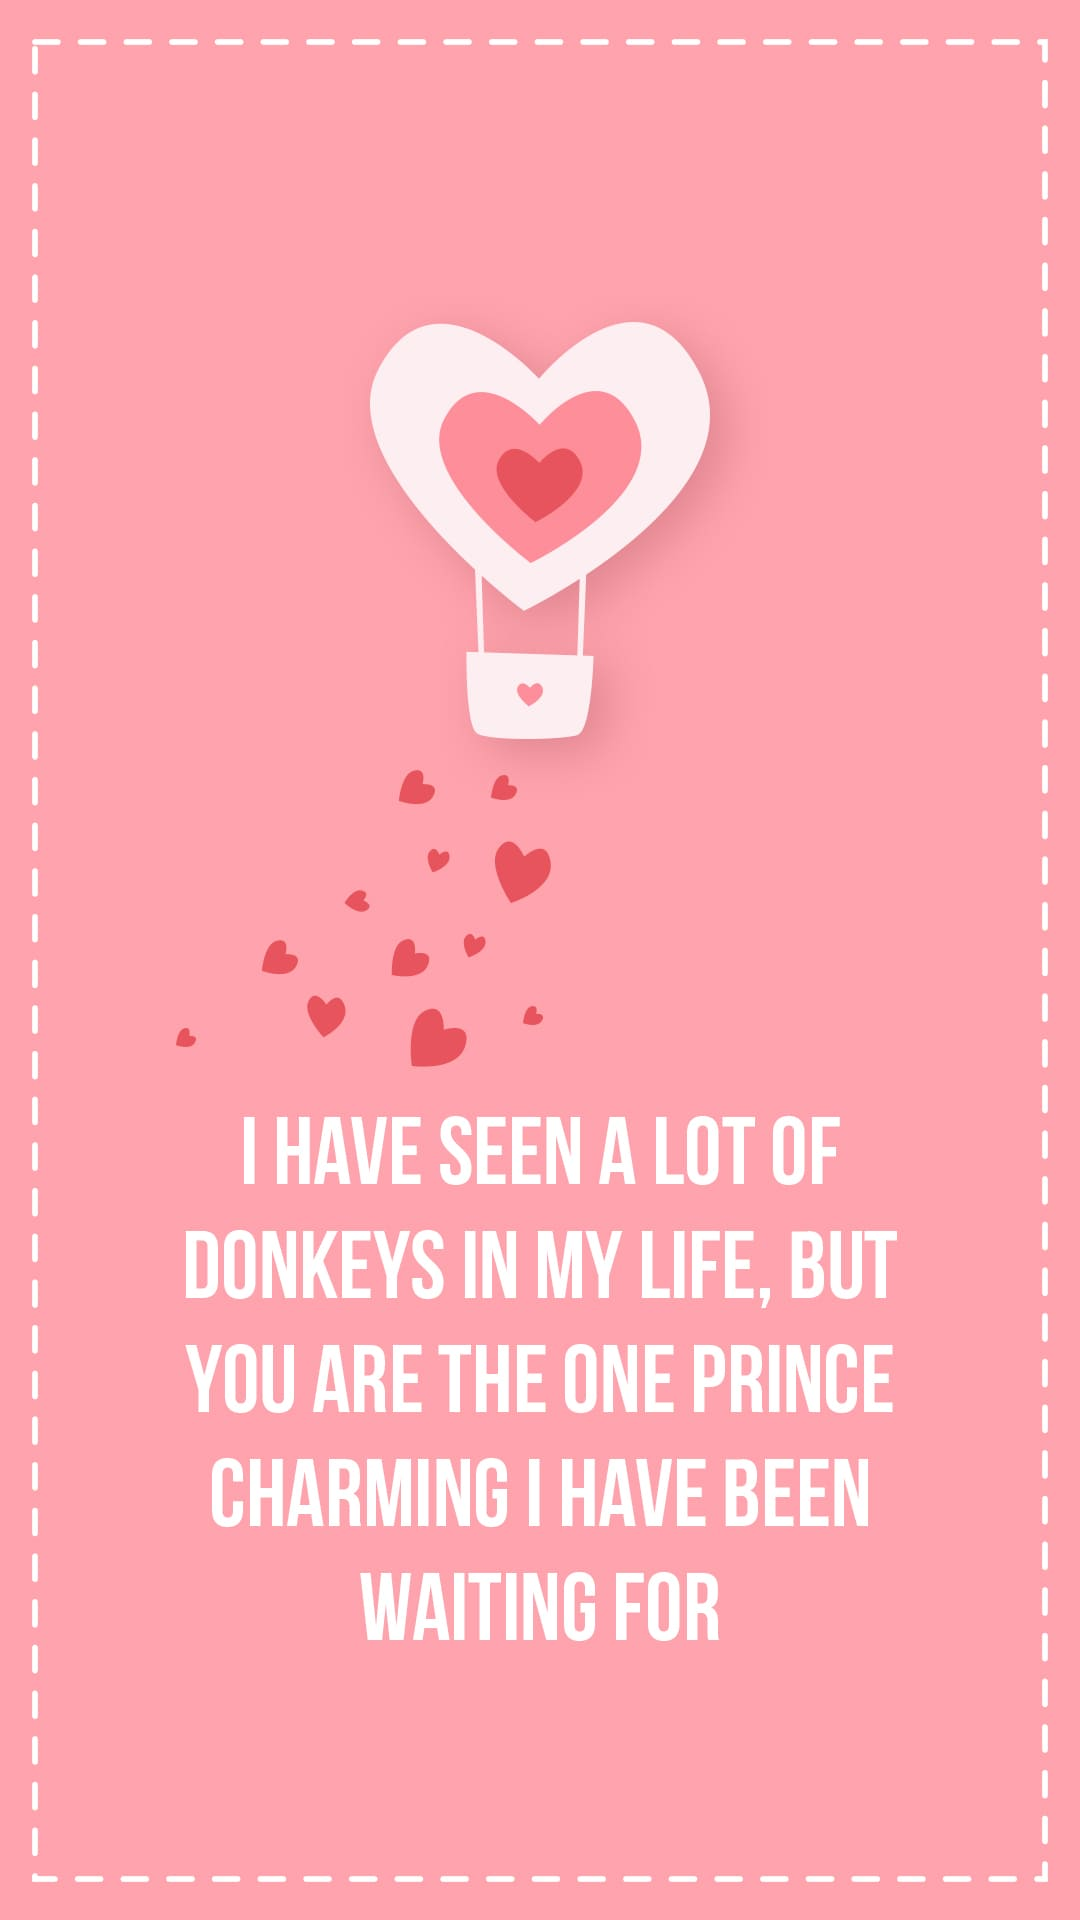 40+ Awesome Valentine's Day Quotes 2021 😍 - valentines day quotes for him 2